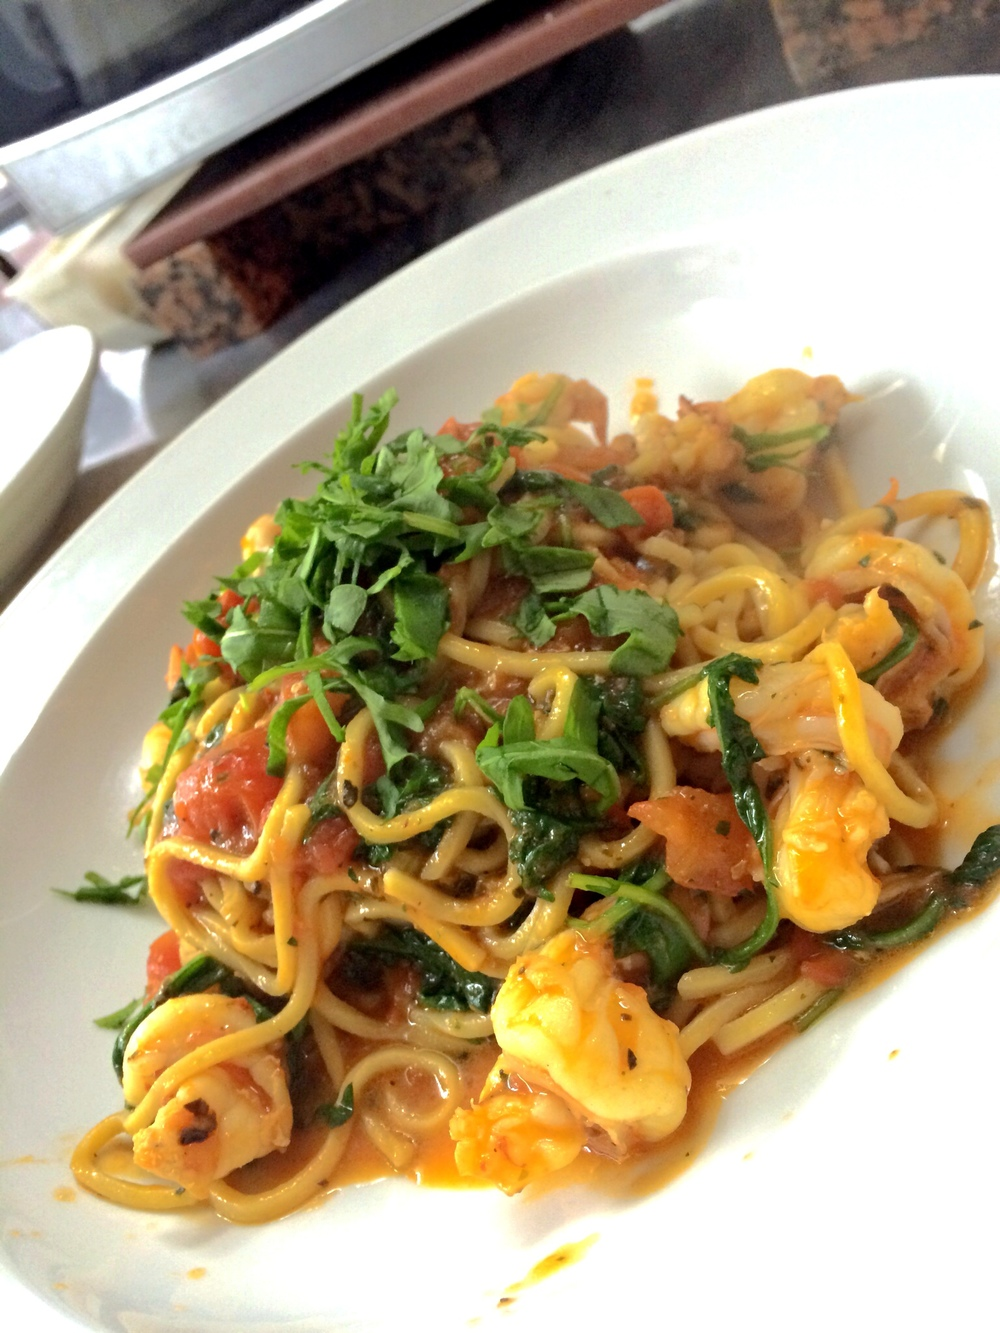 spaghetti with shrimp, arugula, in a cherry tomato sauce